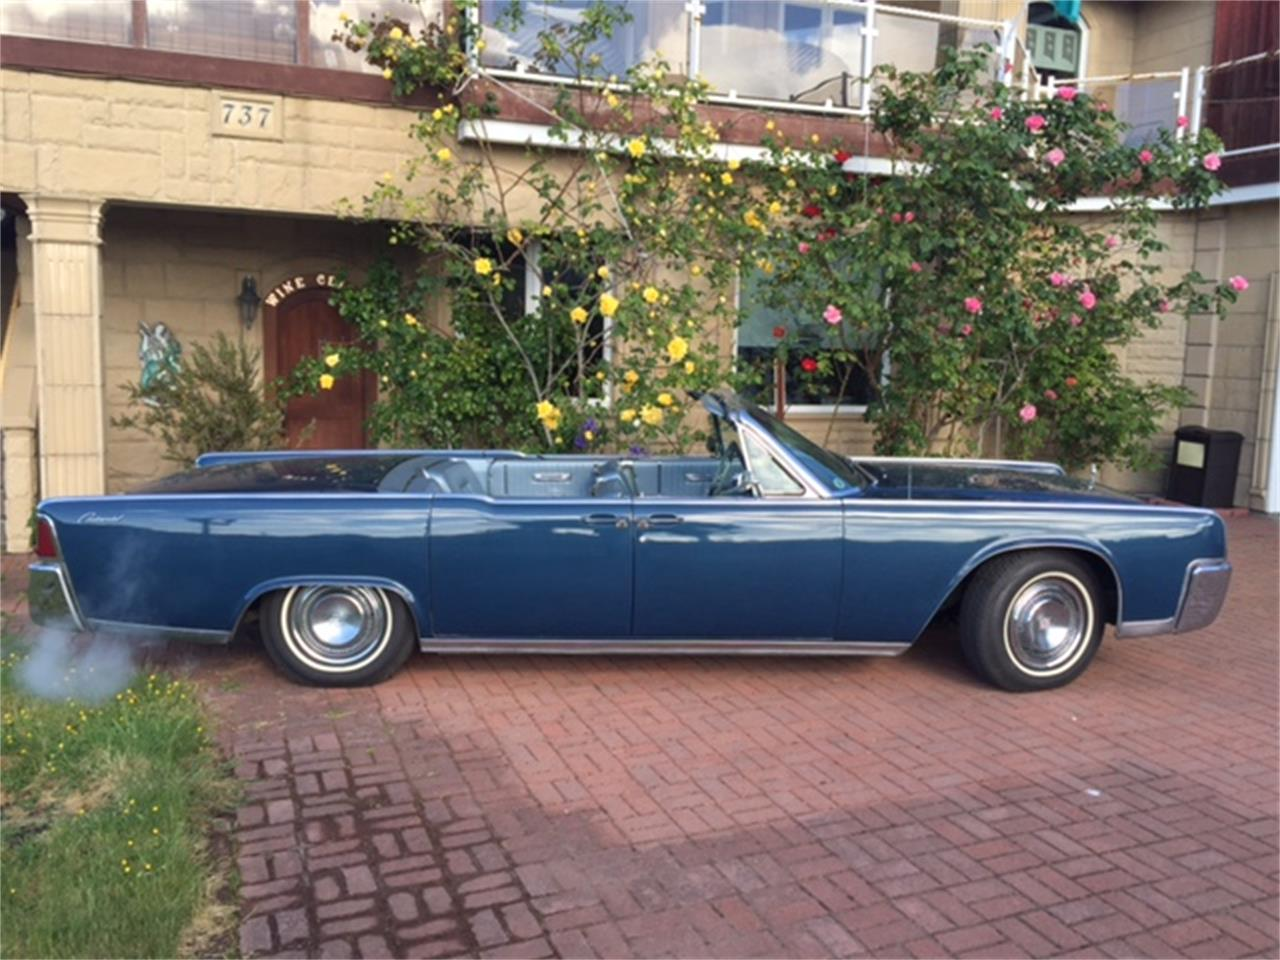 Large Picture Of Clic 1964 Lincoln Continental Located In Point Roberts Washington 47 000 00 Nogx